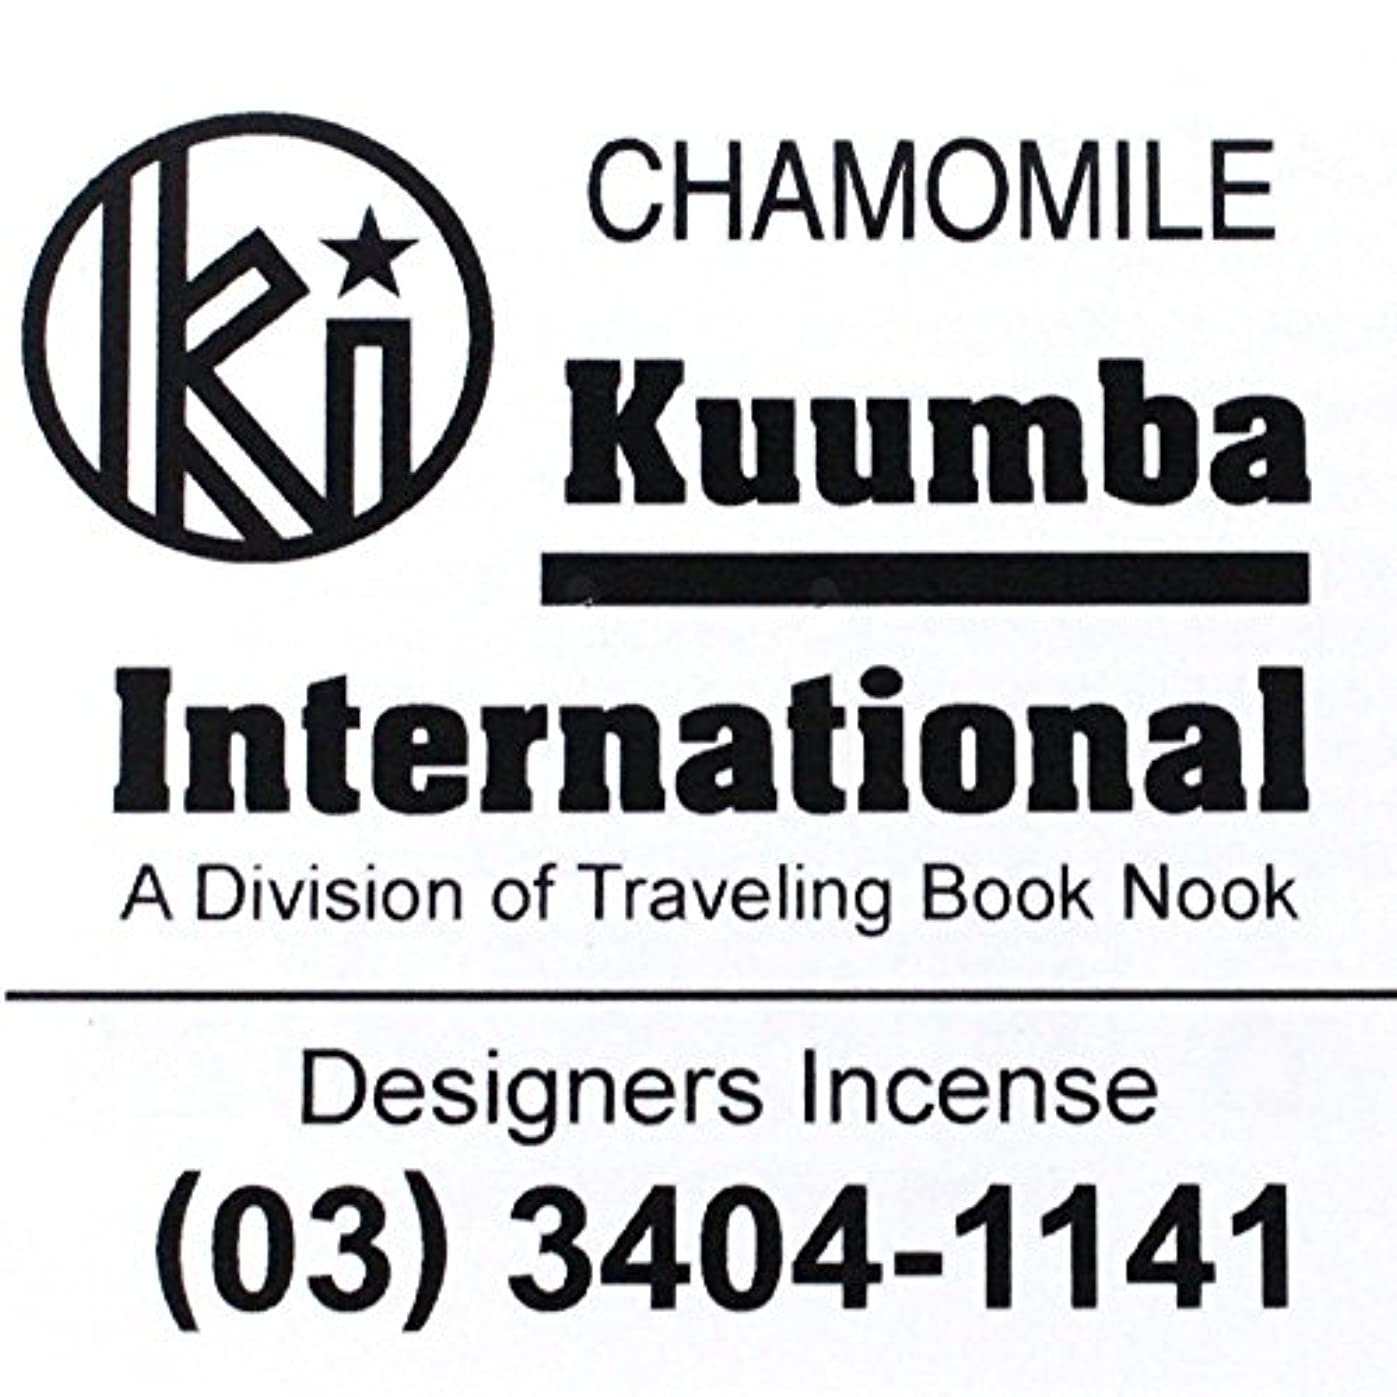 映画一杯めったに(クンバ) KUUMBA『incense』(CHAMOMILE) (Regular size)